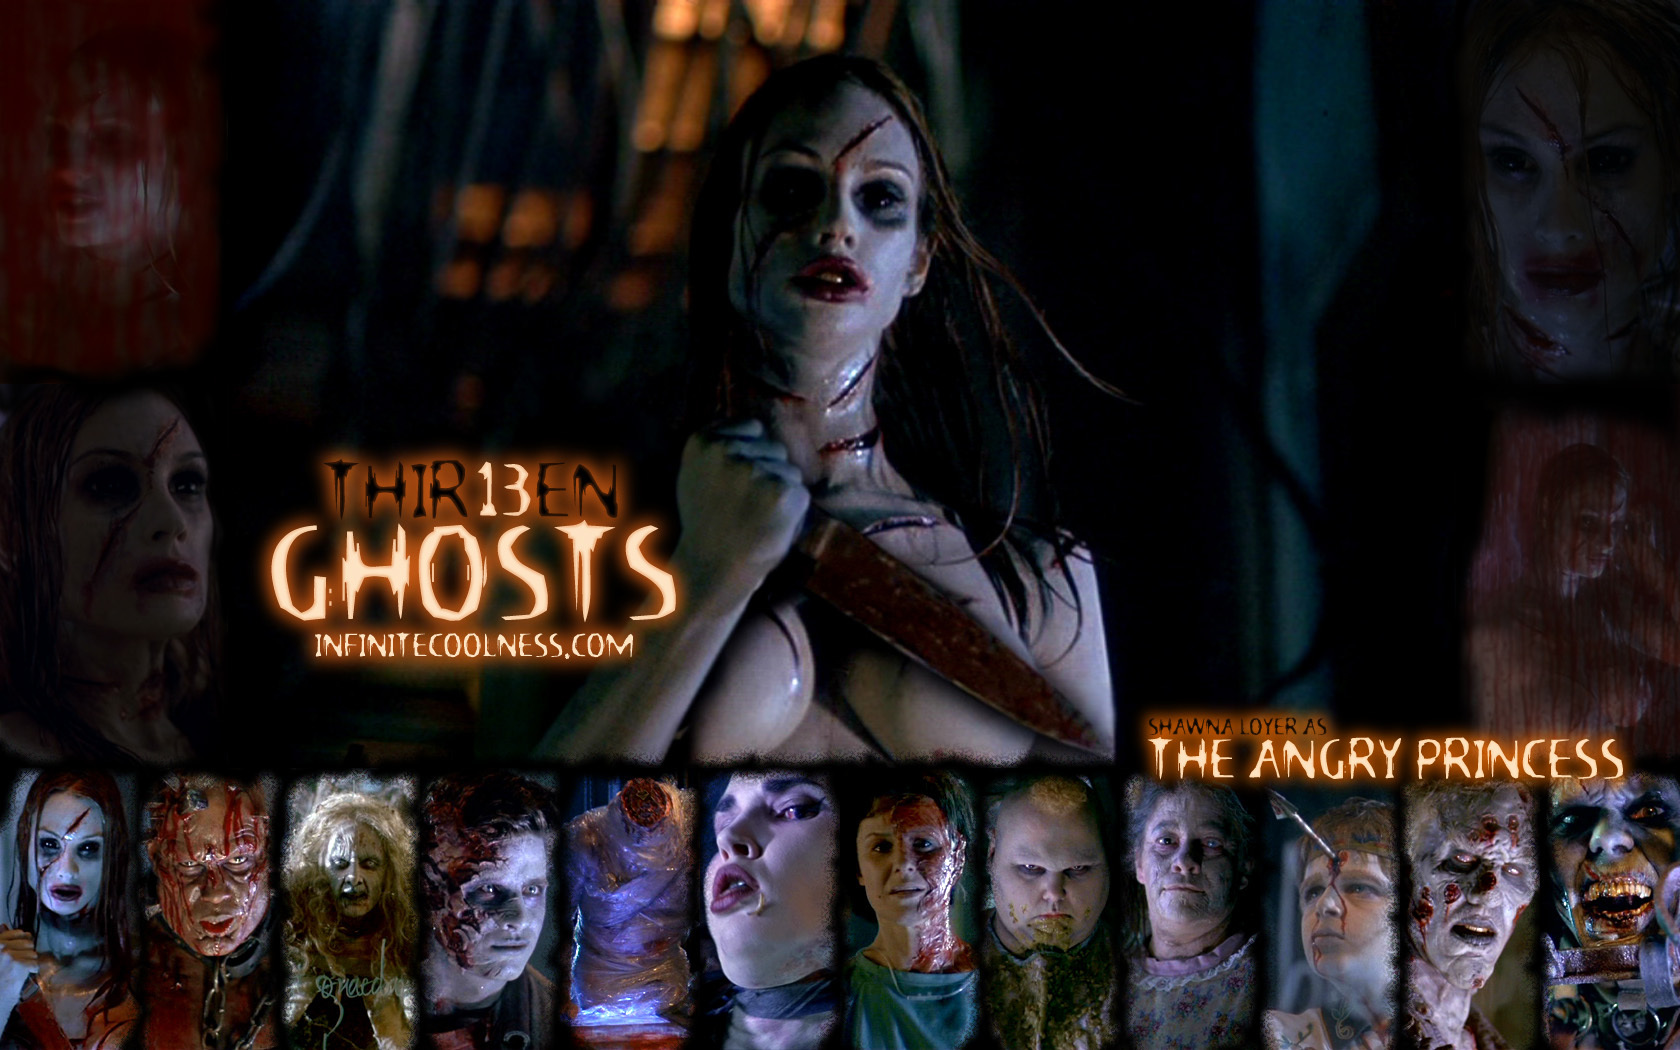 Thirteen ghosts nude scene nackt photo